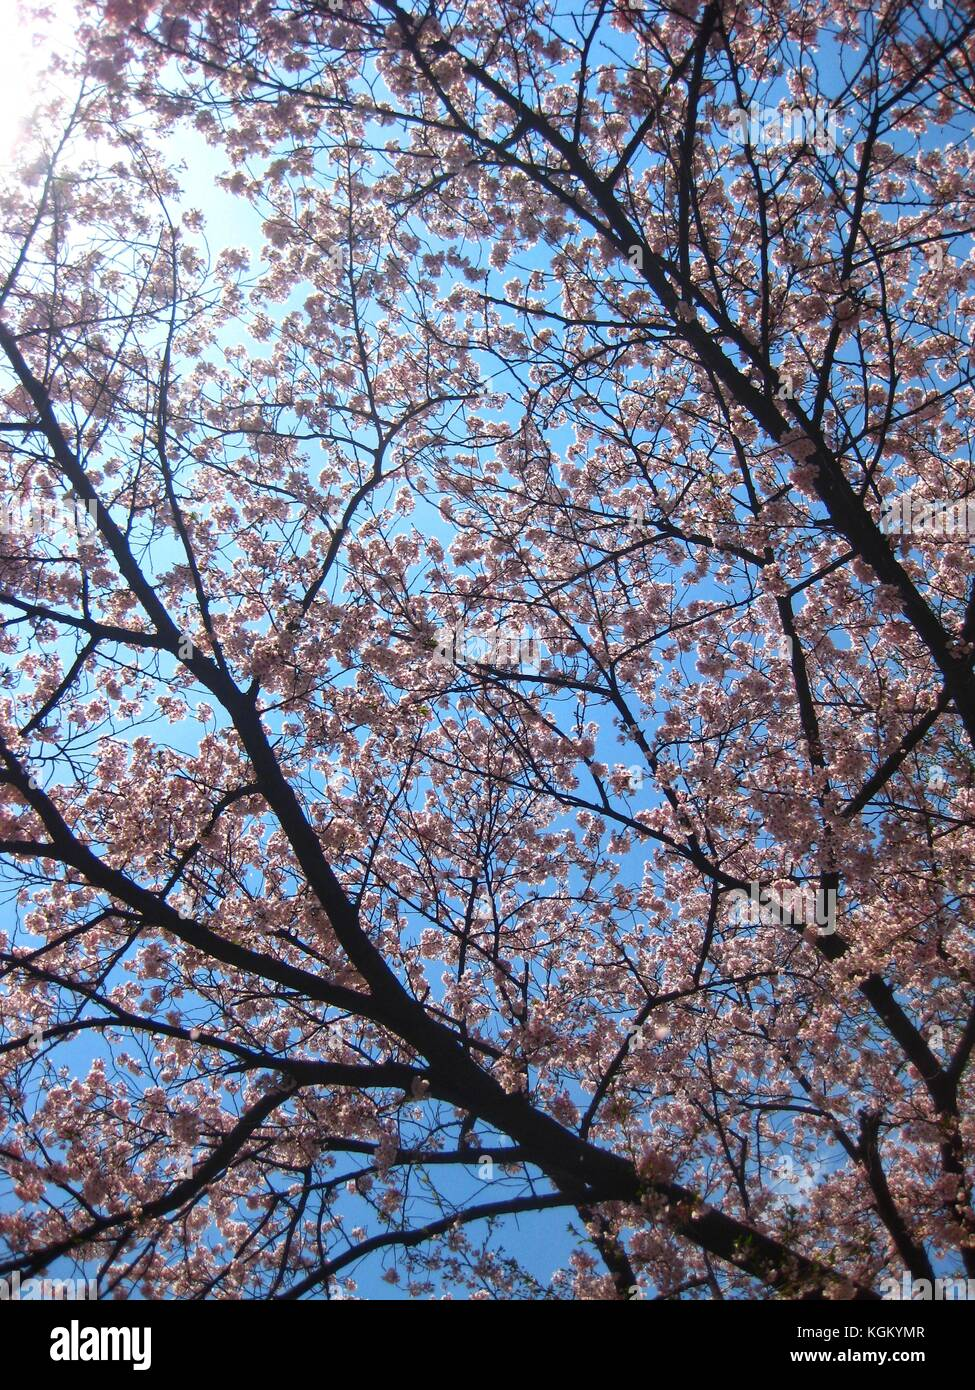 Cherry blossom tree with blue sky in the background stock photo cherry blossom tree with blue sky in the background izmirmasajfo